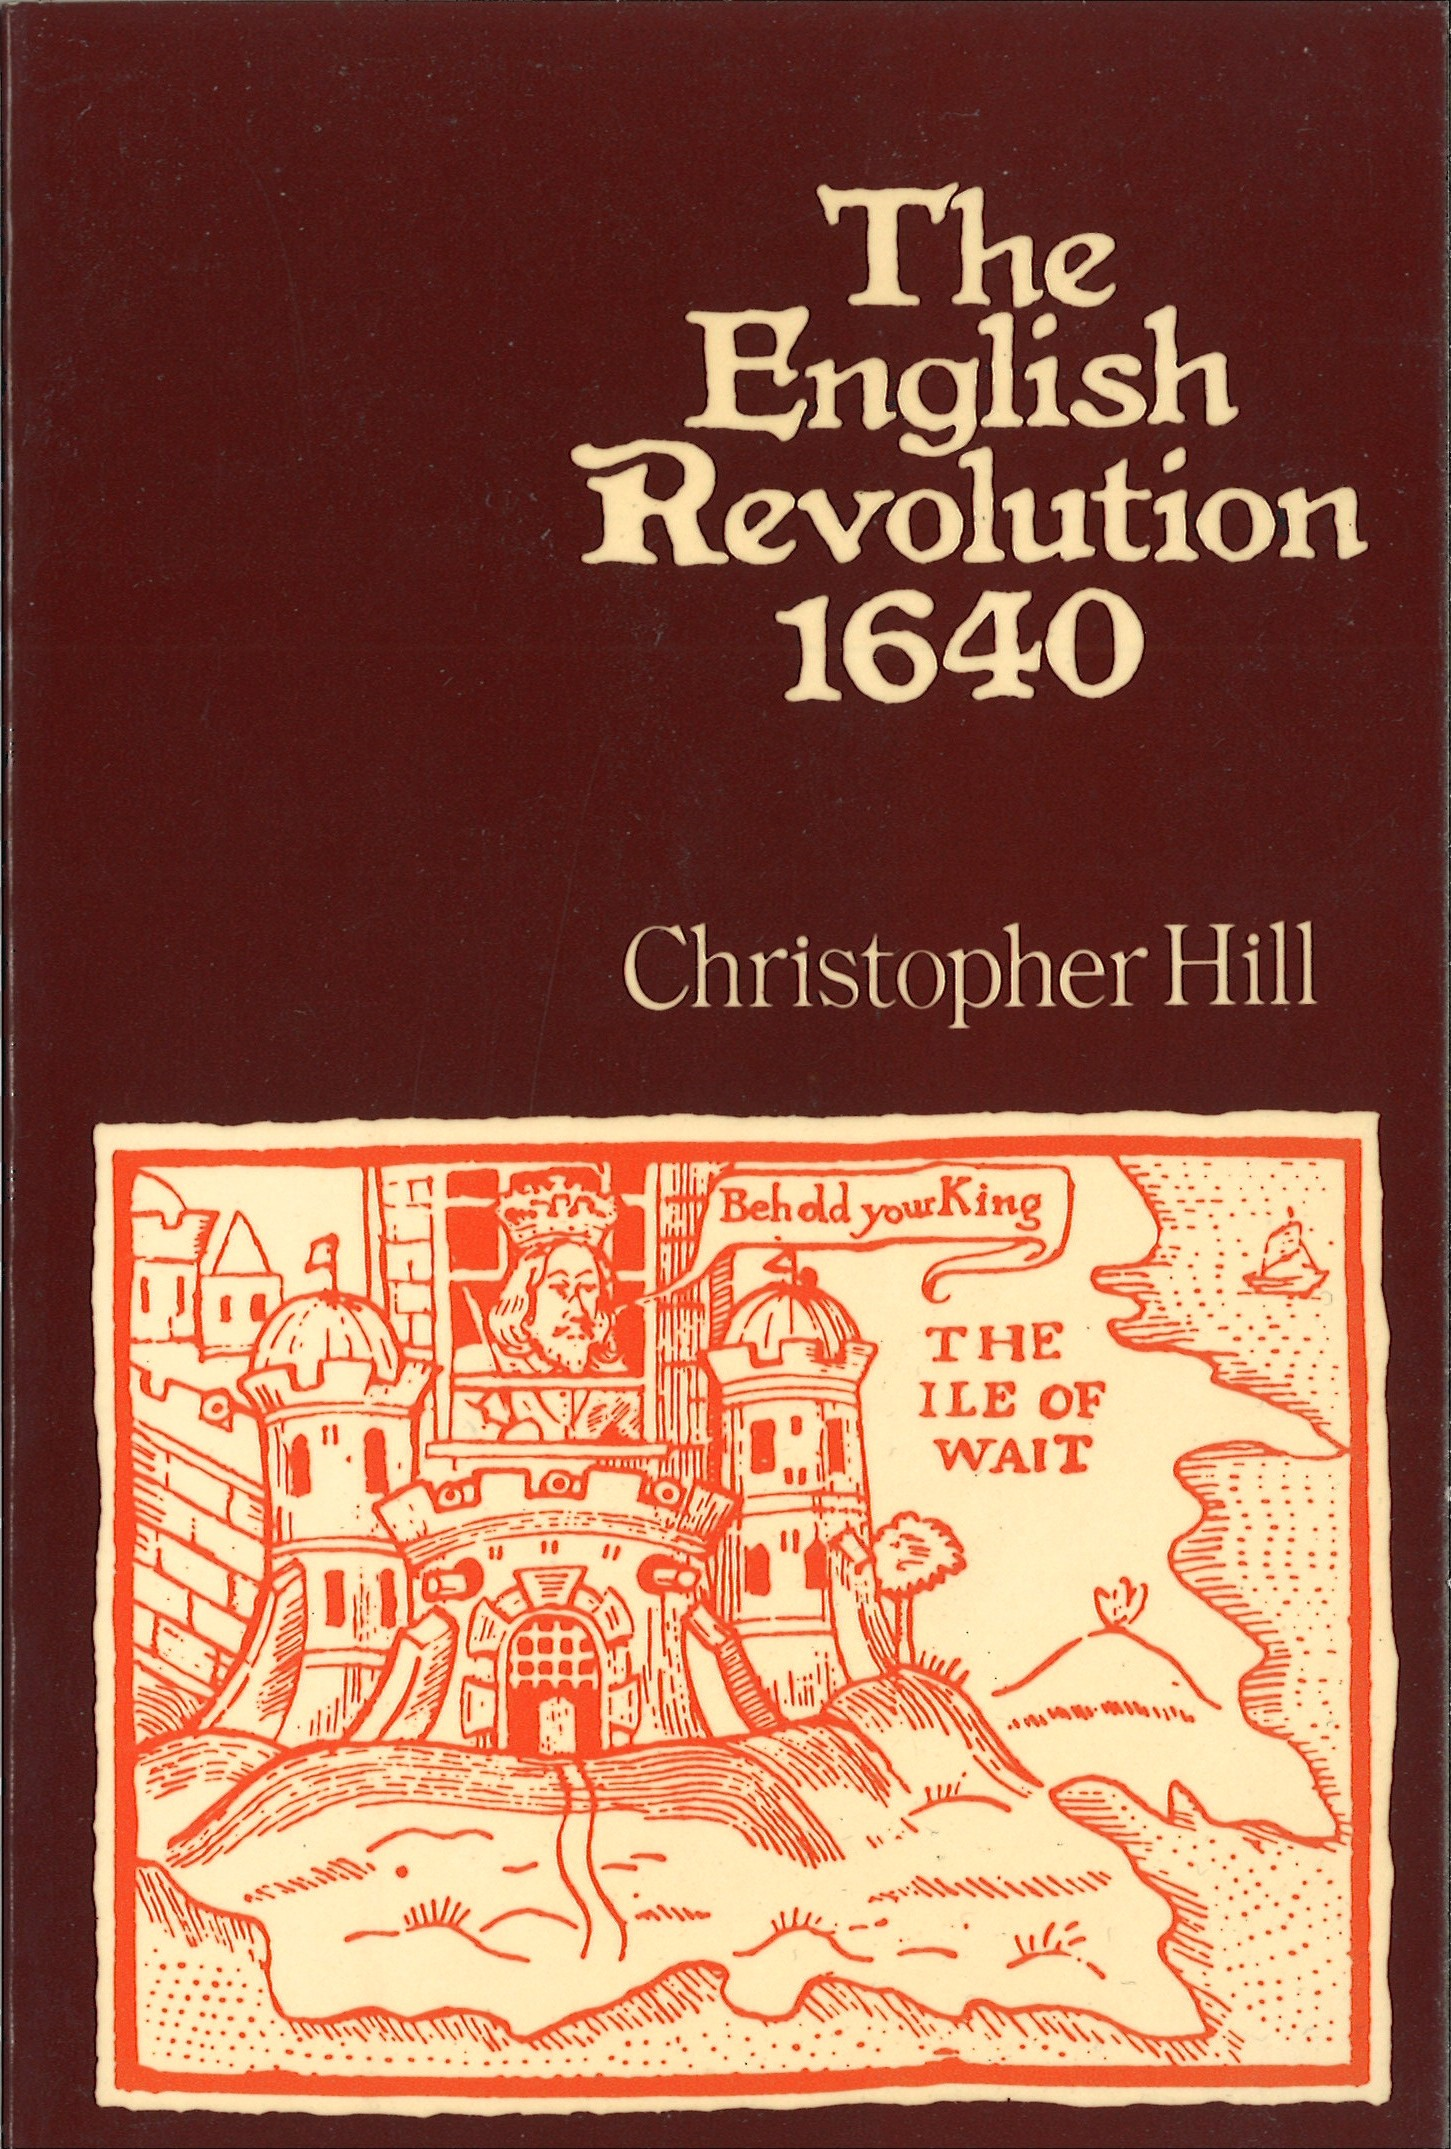 my first english revolution Although used earlier by french writers, the term industrial revolution was first popularized by the english economic historian arnold toynbee (1852-83) to describe britain's economic development from 1760 to 1840 since toynbee's time the term has been more broadly applied.